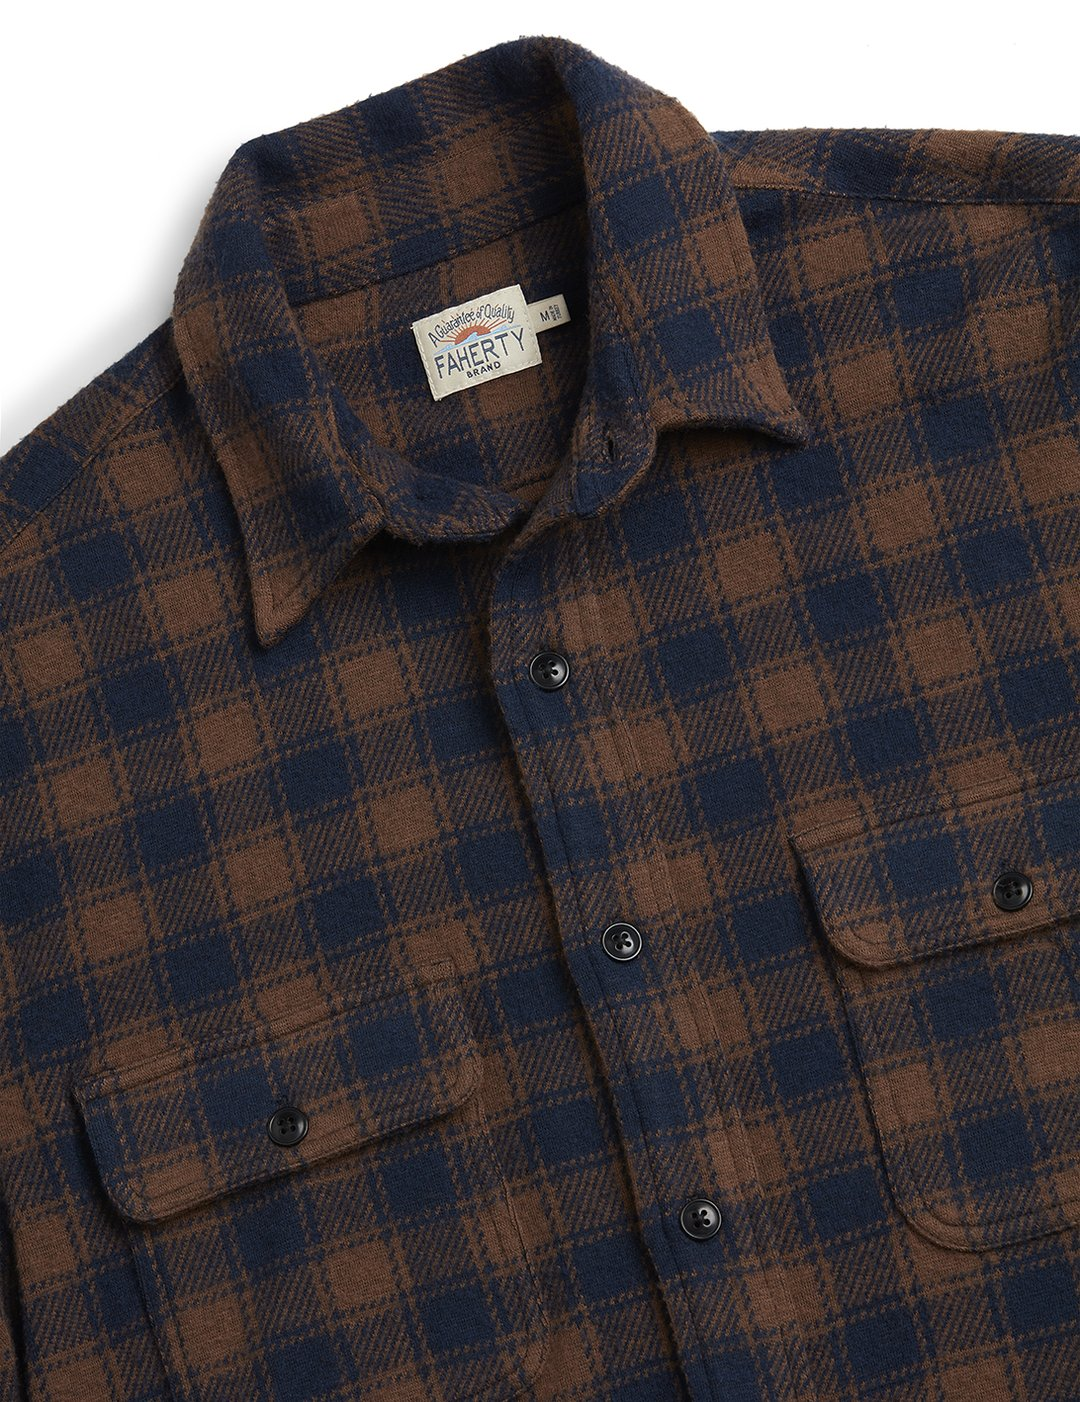 Faherty - Legend Sweater Shirt - Cider Plaid